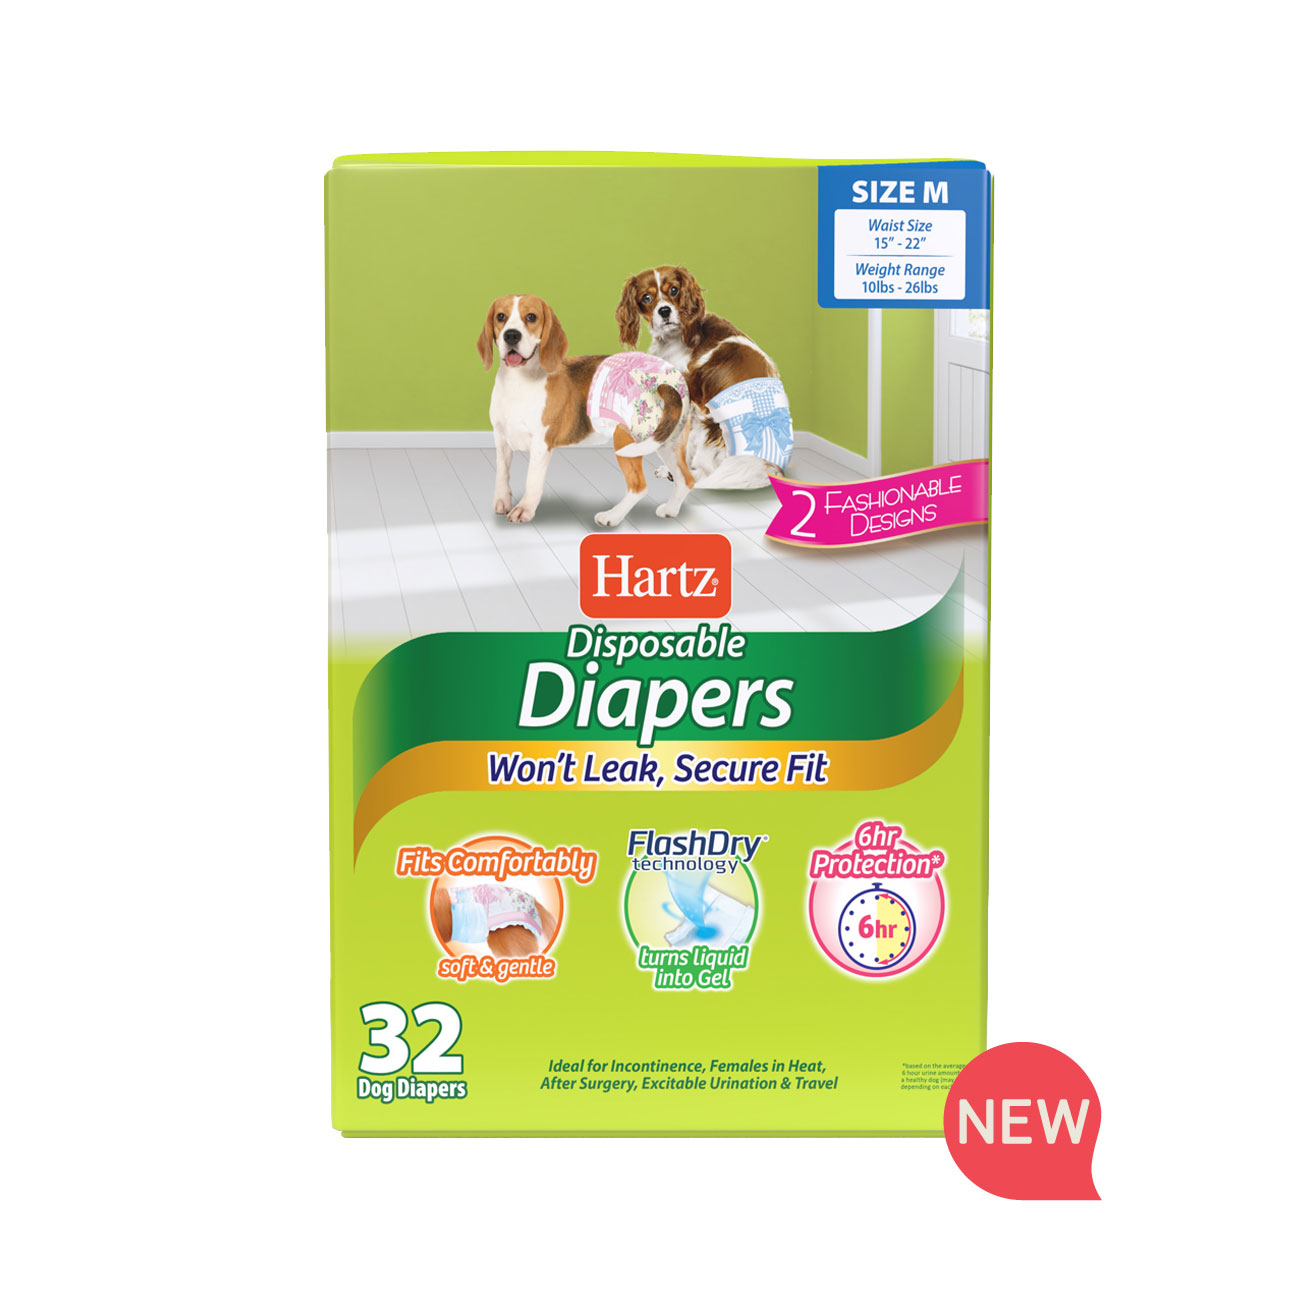 Hartz disposable diapers. Front of package. Avoid unpleasant messes with Hartz disposable diapers. Medium diapers for dogs. Hartz SKU#3270011243.